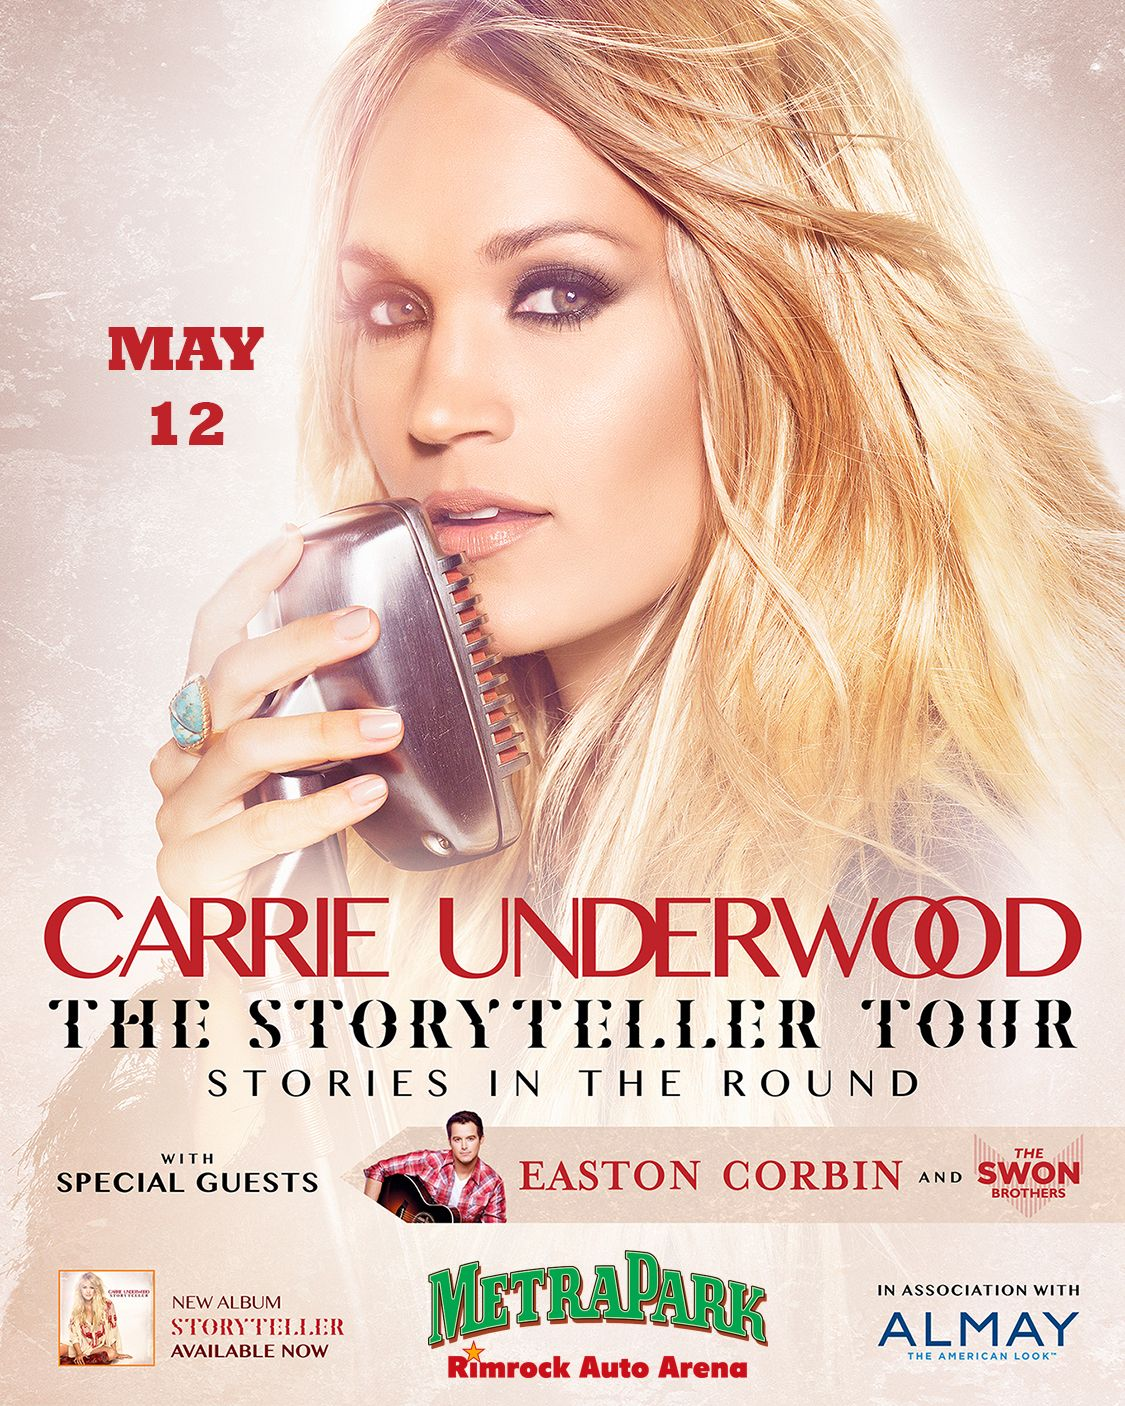 Pin by MetraPark on Carrie Underwood Carrie underwood